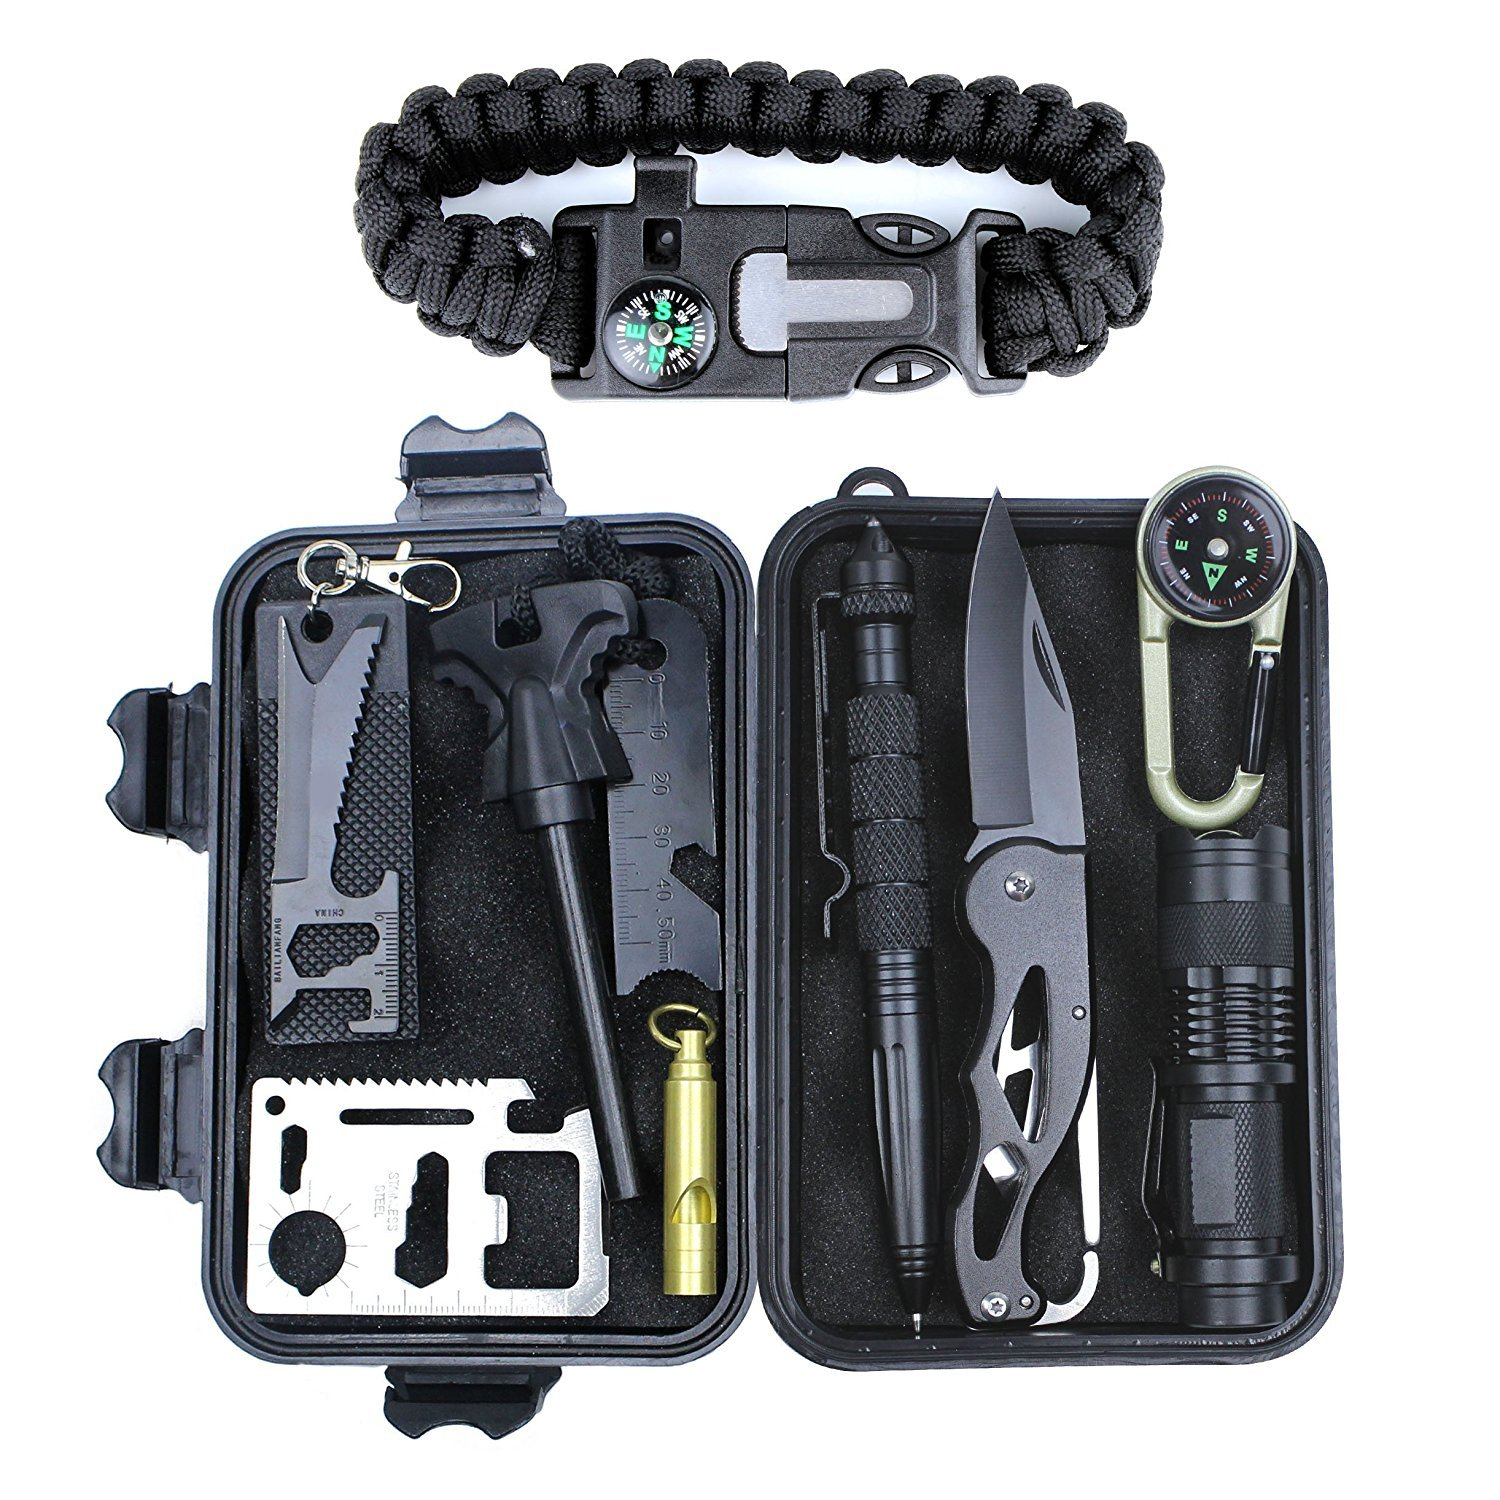 Aizhy Emergency Survival Kit 11 in 1,Professional Outdoor Survival Gear Tool with Survival Bracelet, Fire Starter, Compass, Swiss Card, Saber Card Knife for Traveling/Hiking/Biking/Climbing/Hunting